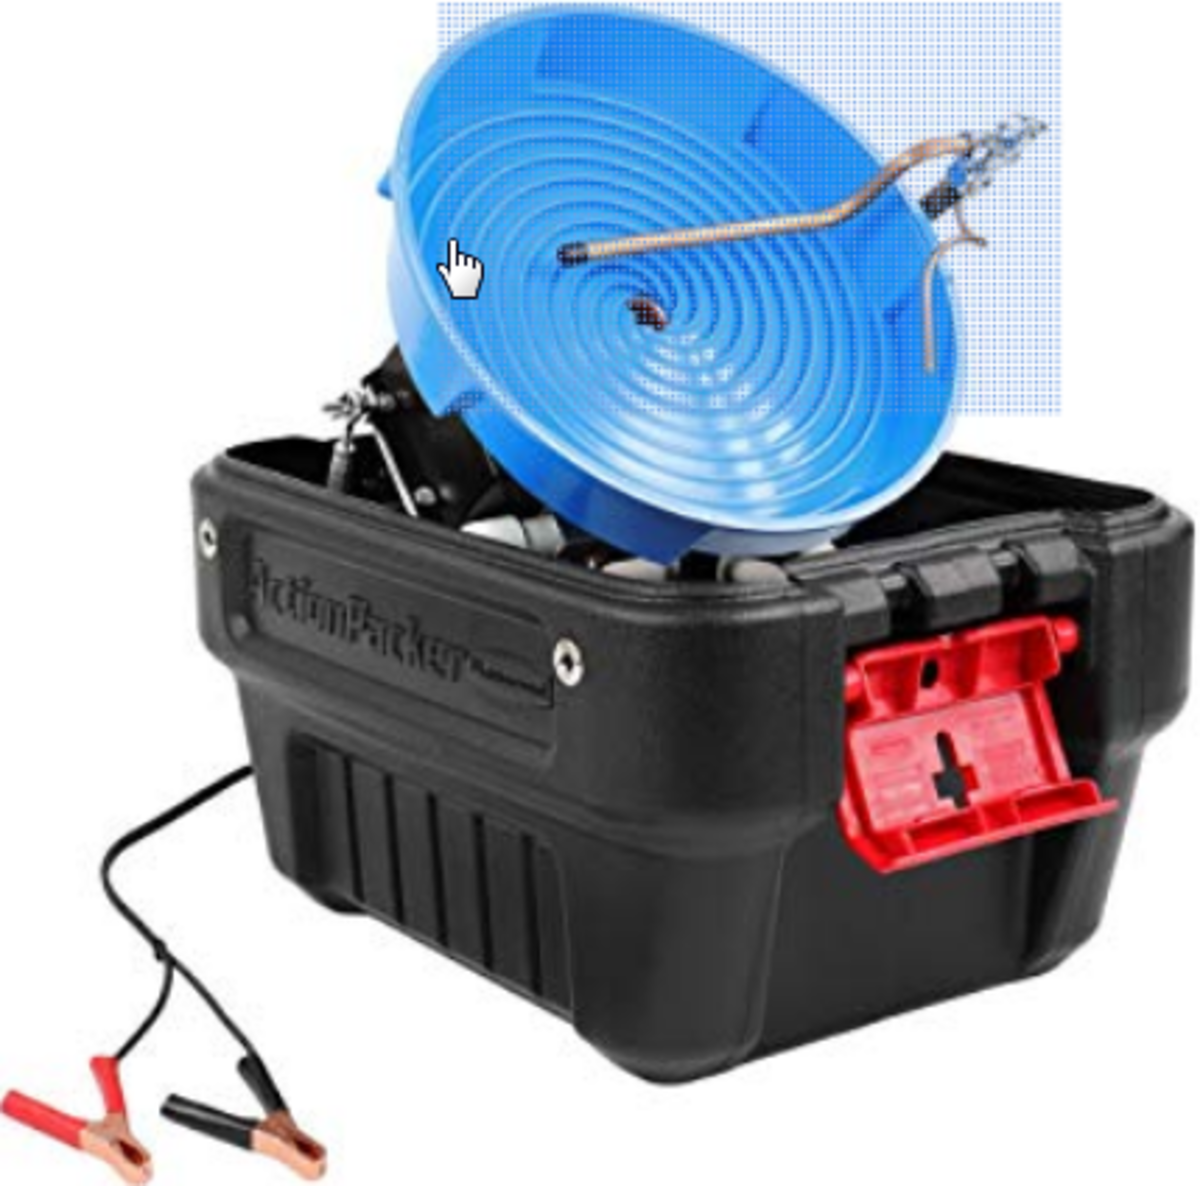 Spiral Wheel Gold Panning Machines: Automated Gold Recovery | HobbyLark